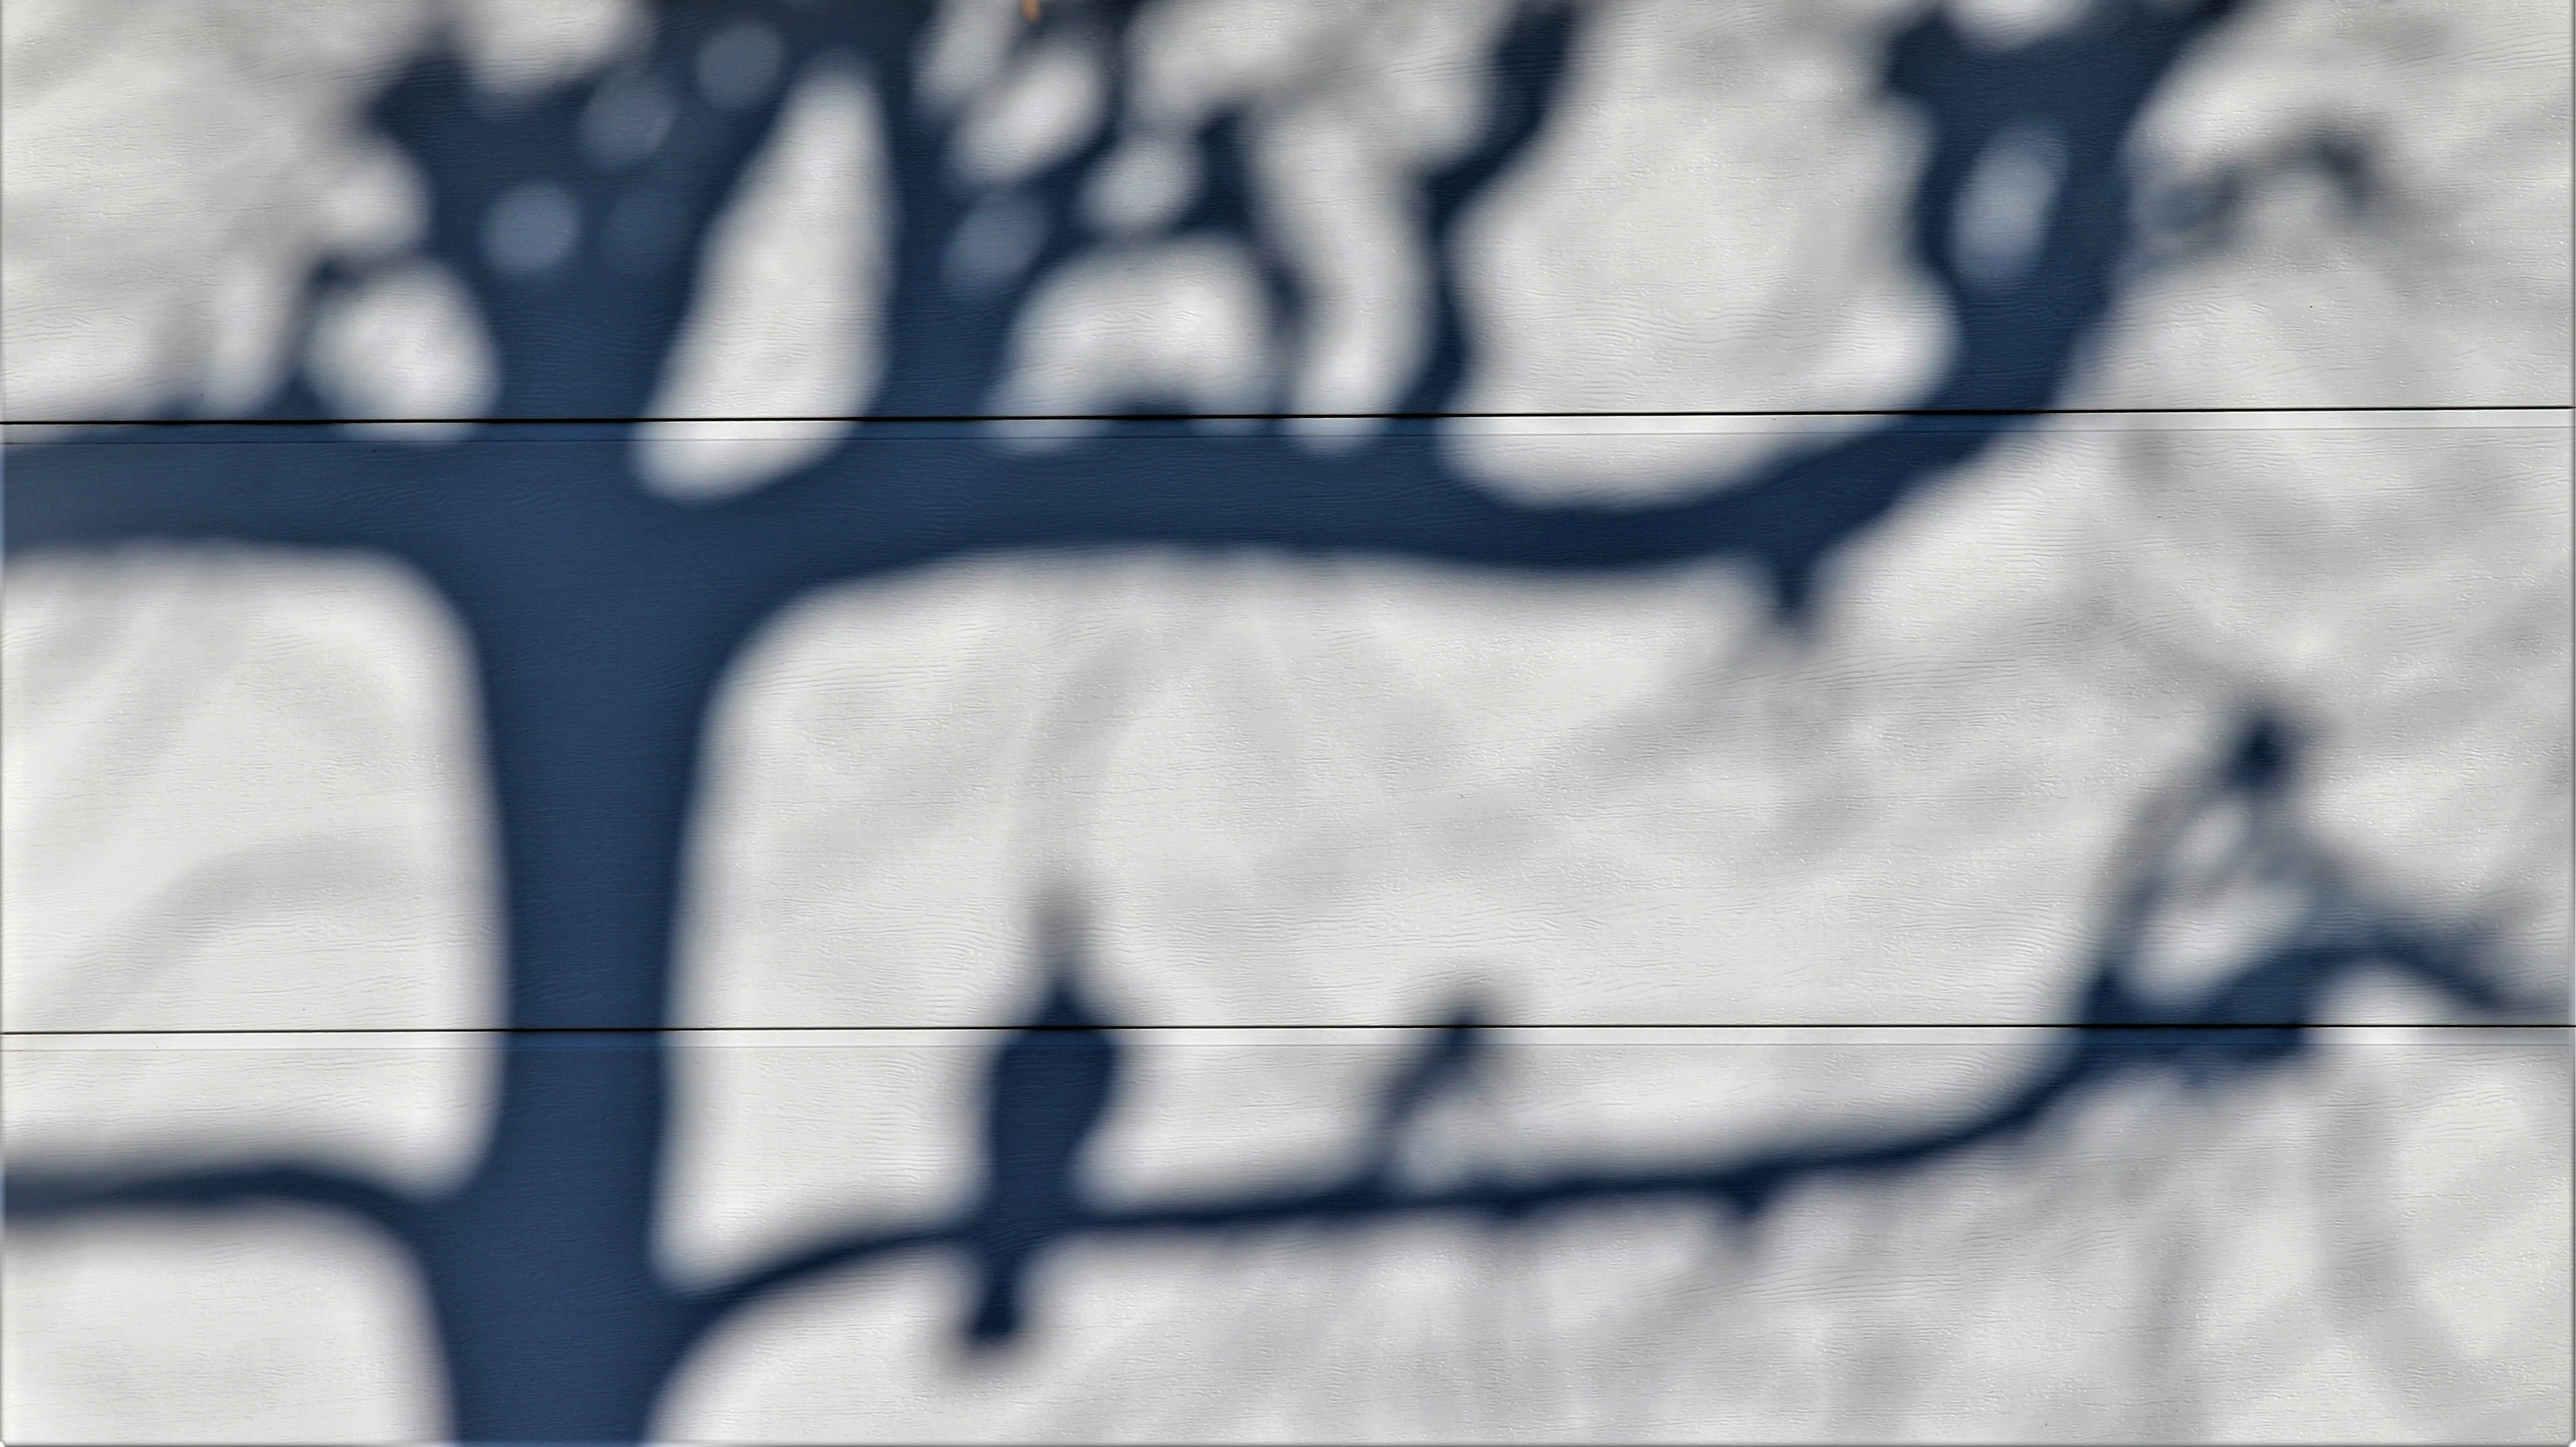 Free stock photo of light and shadow